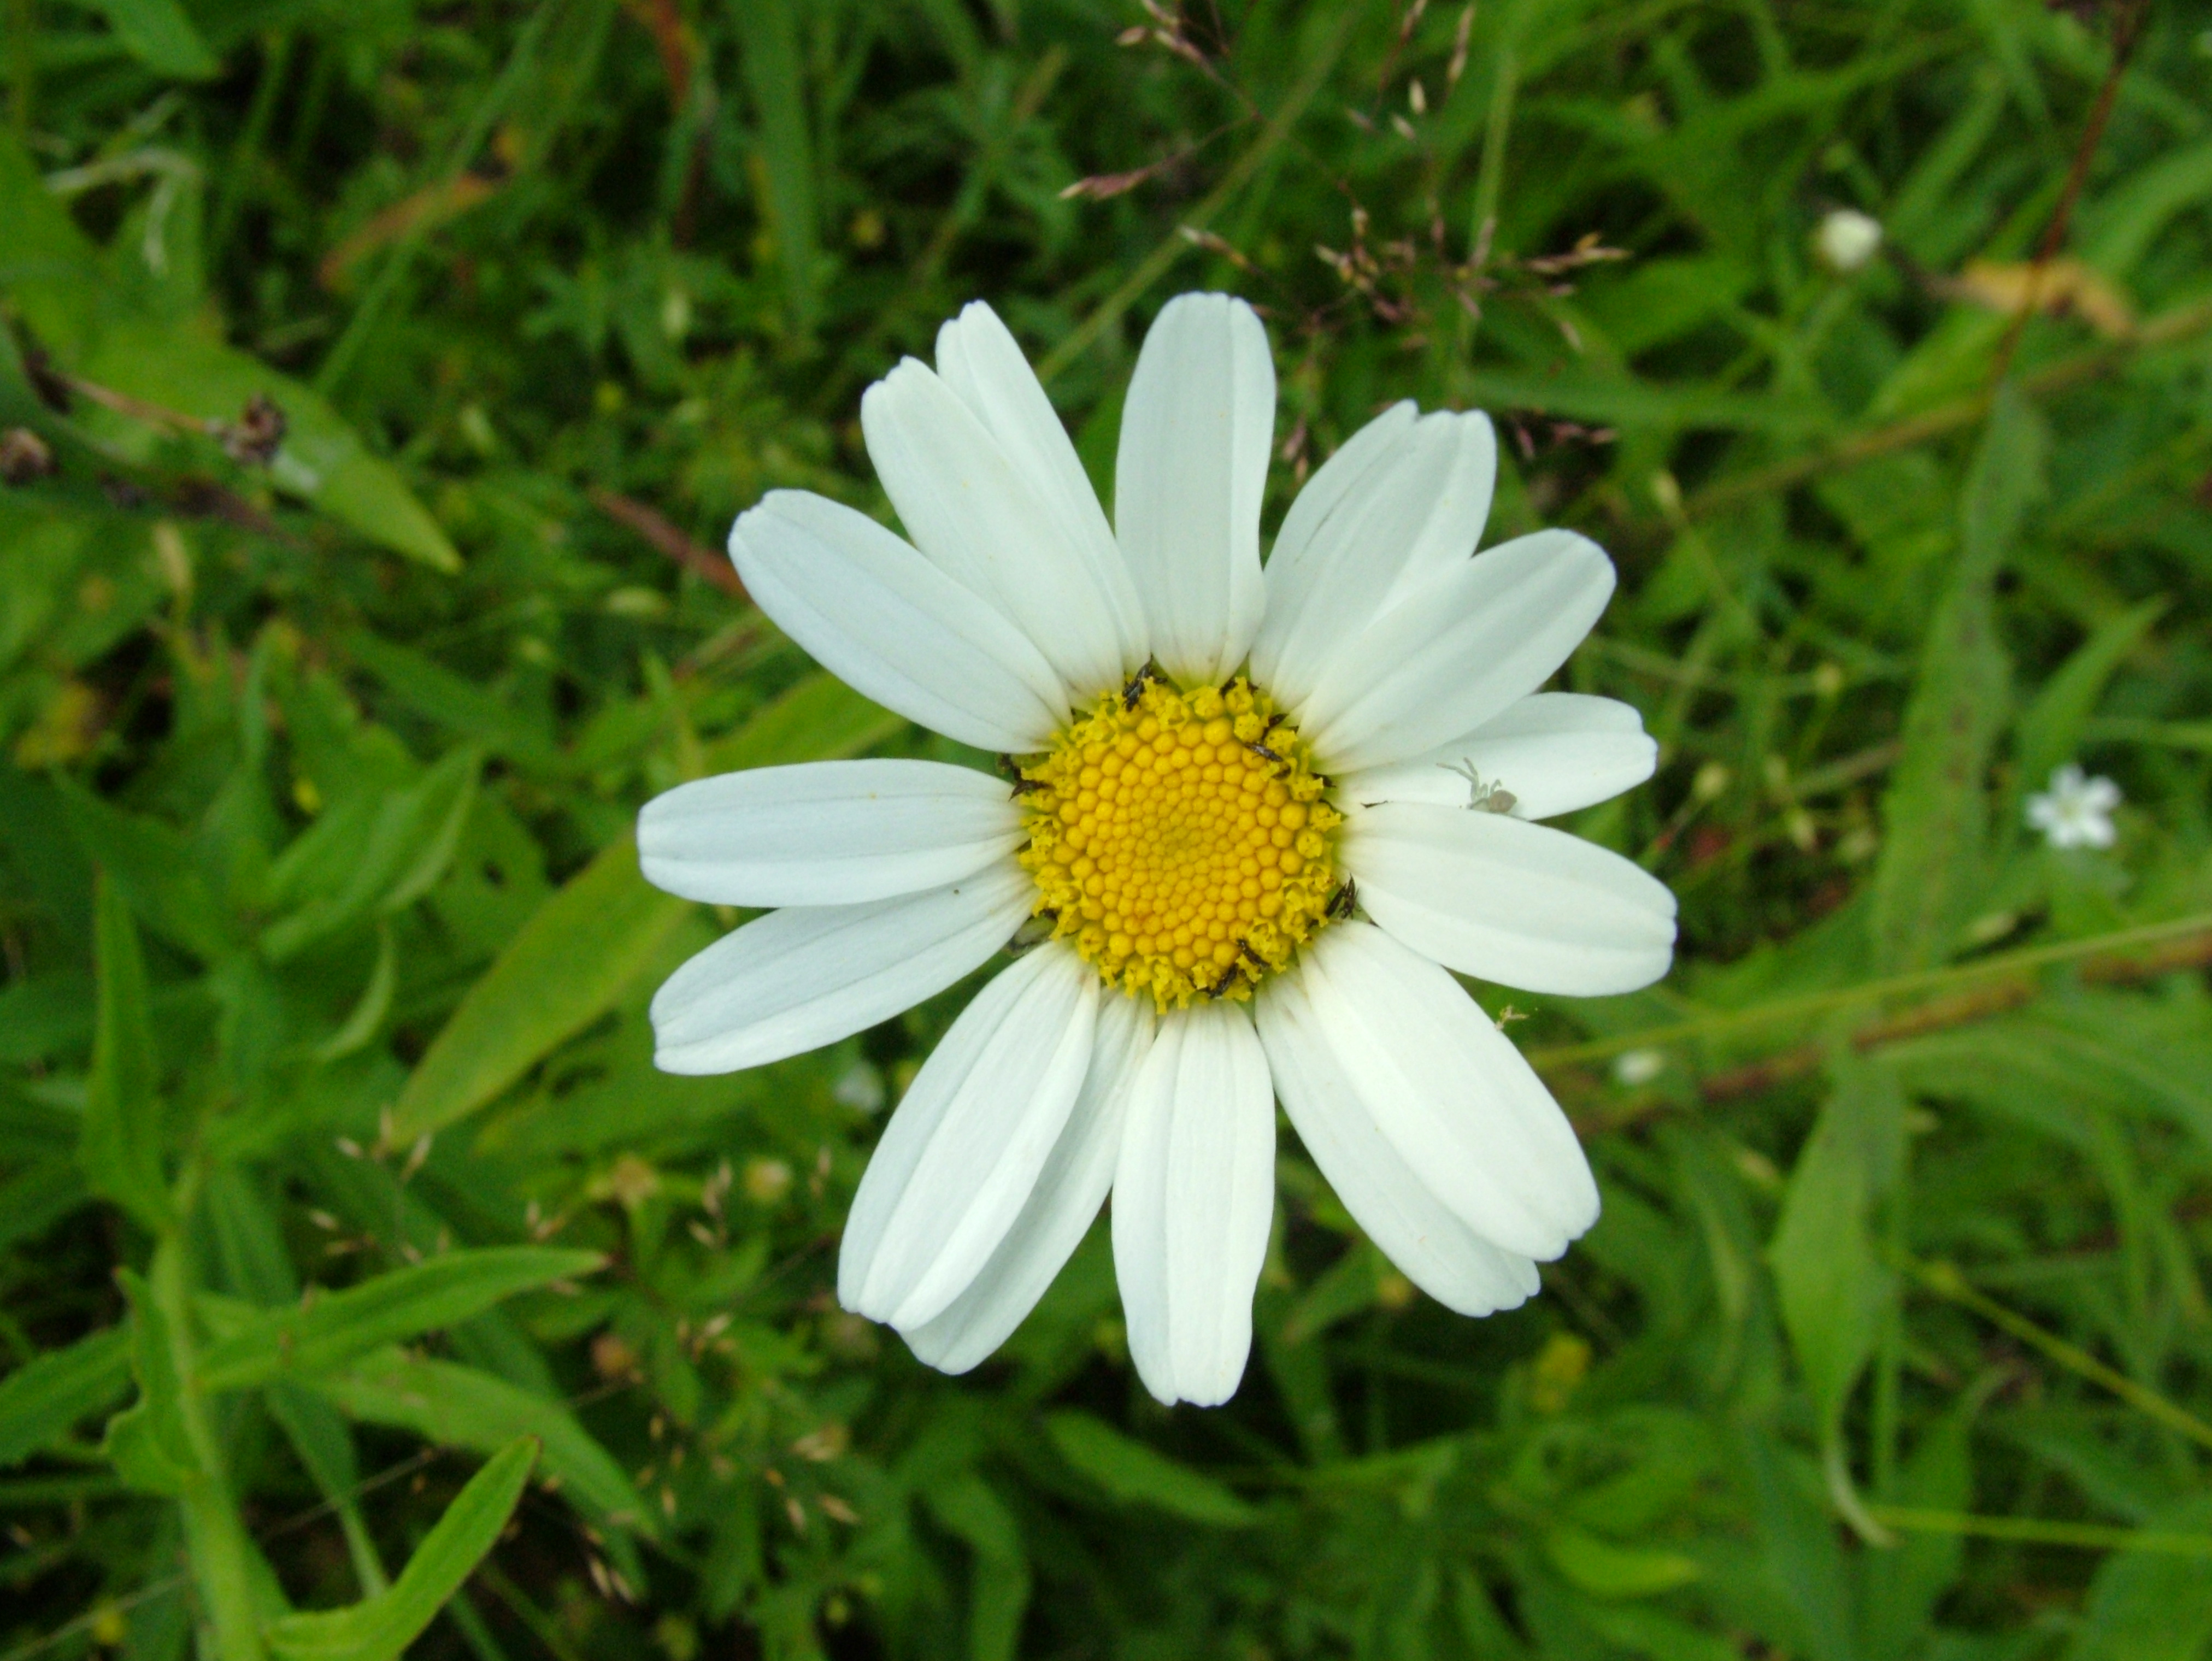 download daisy insects image in hi res